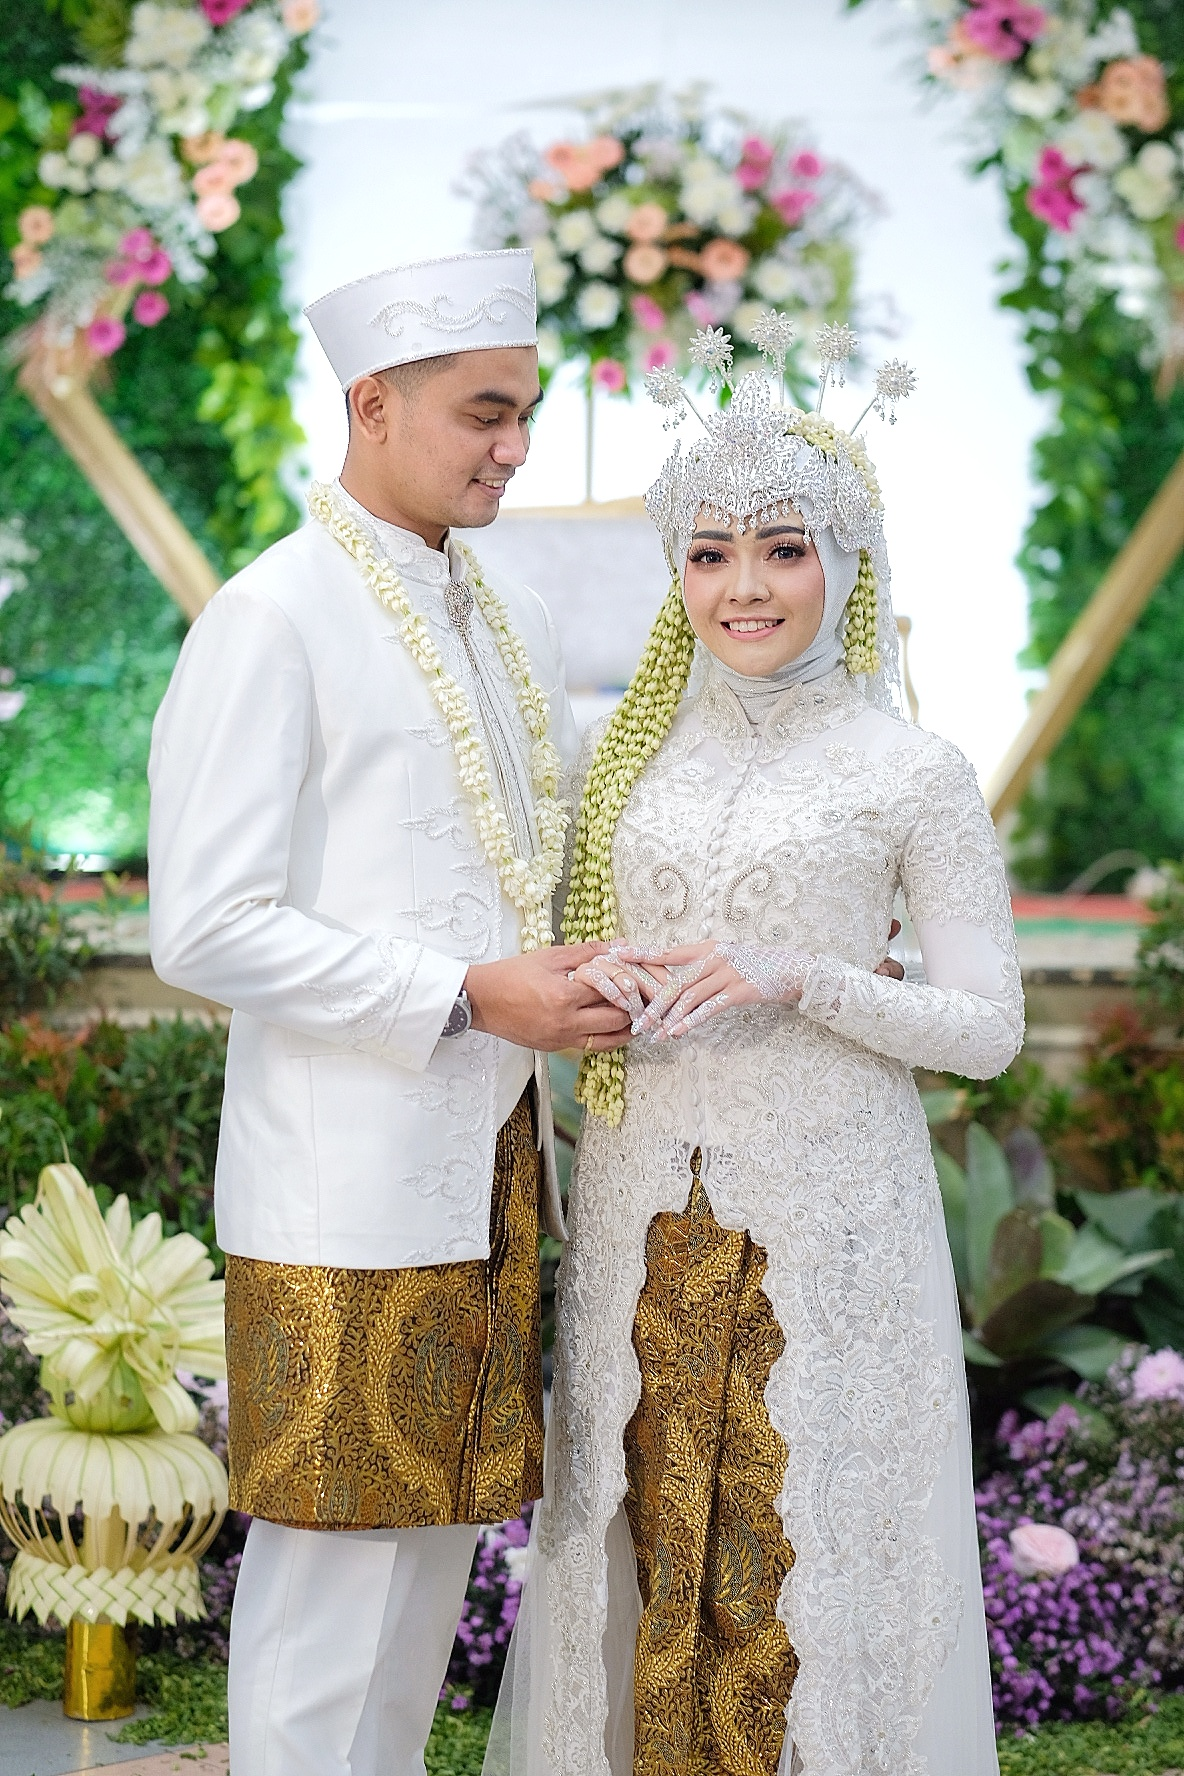 LAKSMI - Kebaya Muslimah & Islamic Bride  Wedding Bridal in